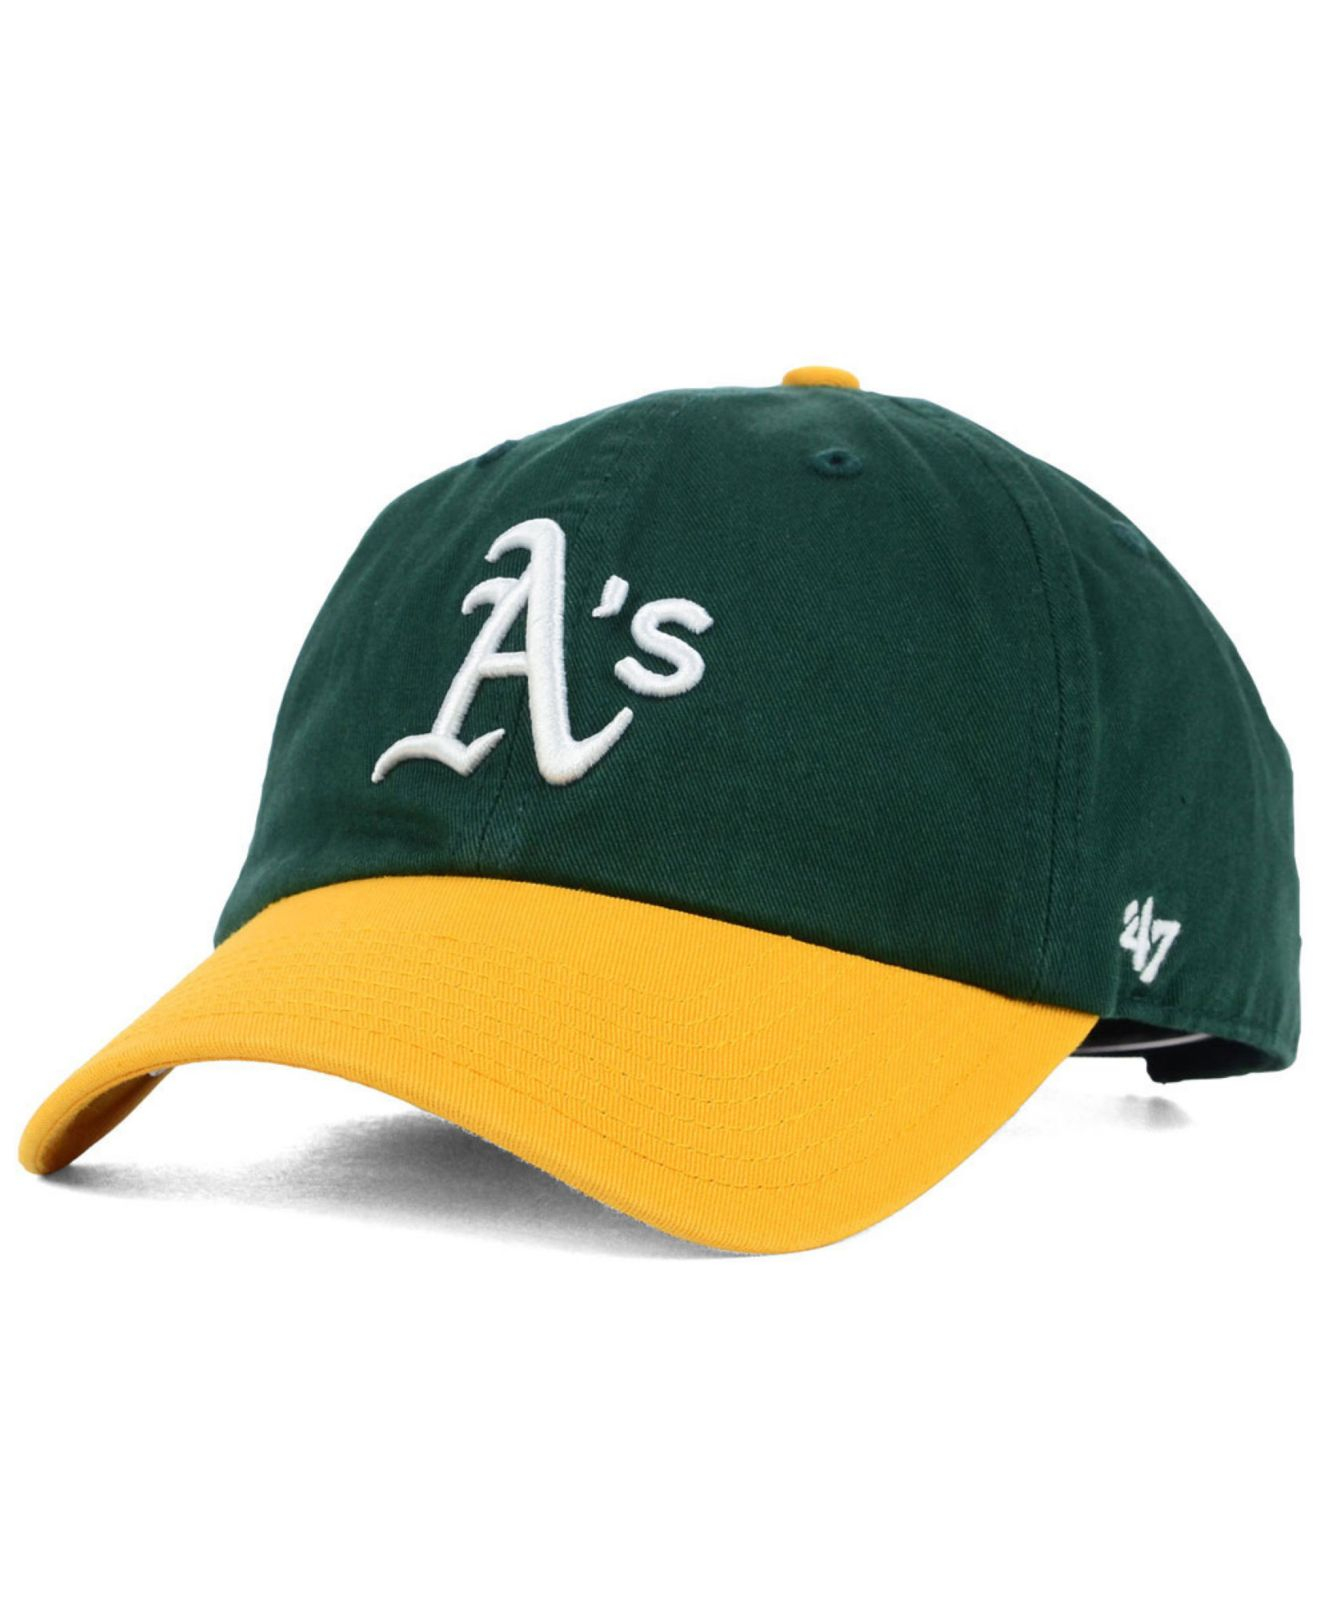 best sneakers 11ec4 6ae76 ... order lyst 47 brand oakland athletics ofr clean up cap in green for men  1f8e2 6ec4f